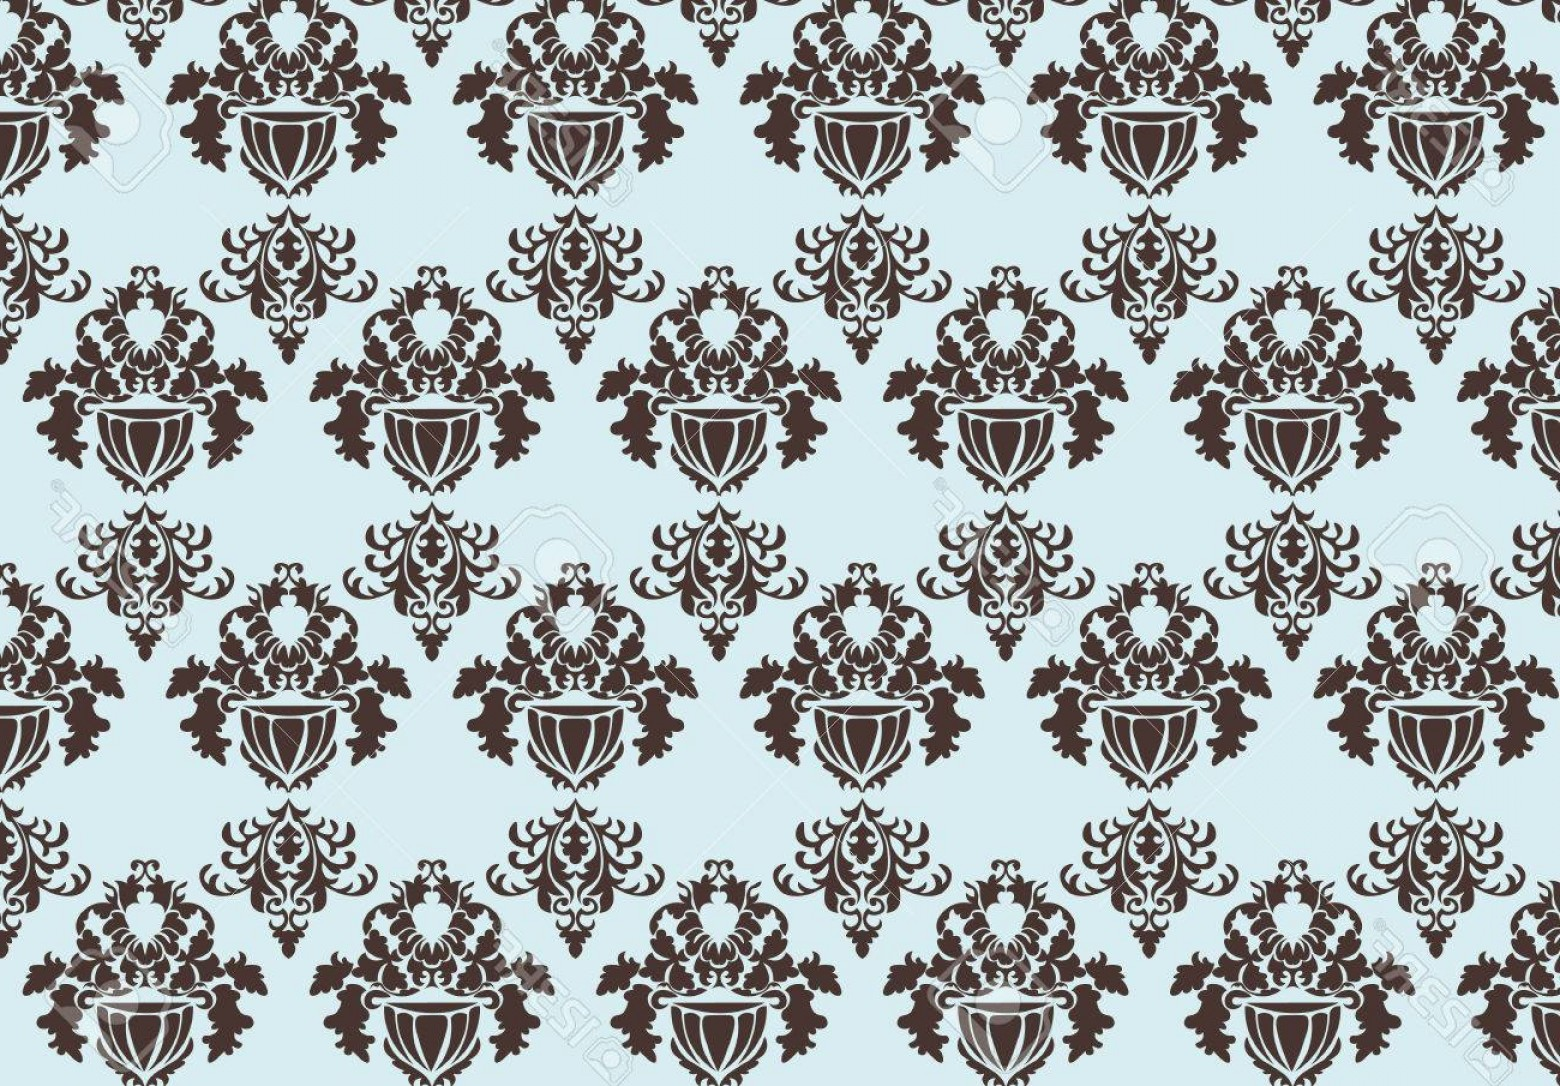 Victorian Motif Vector: Photostock Vector Vintage Baroque Pattern Ornament Damask Motif Vector Victorian Royal Stylish Ornament For Texture Fa